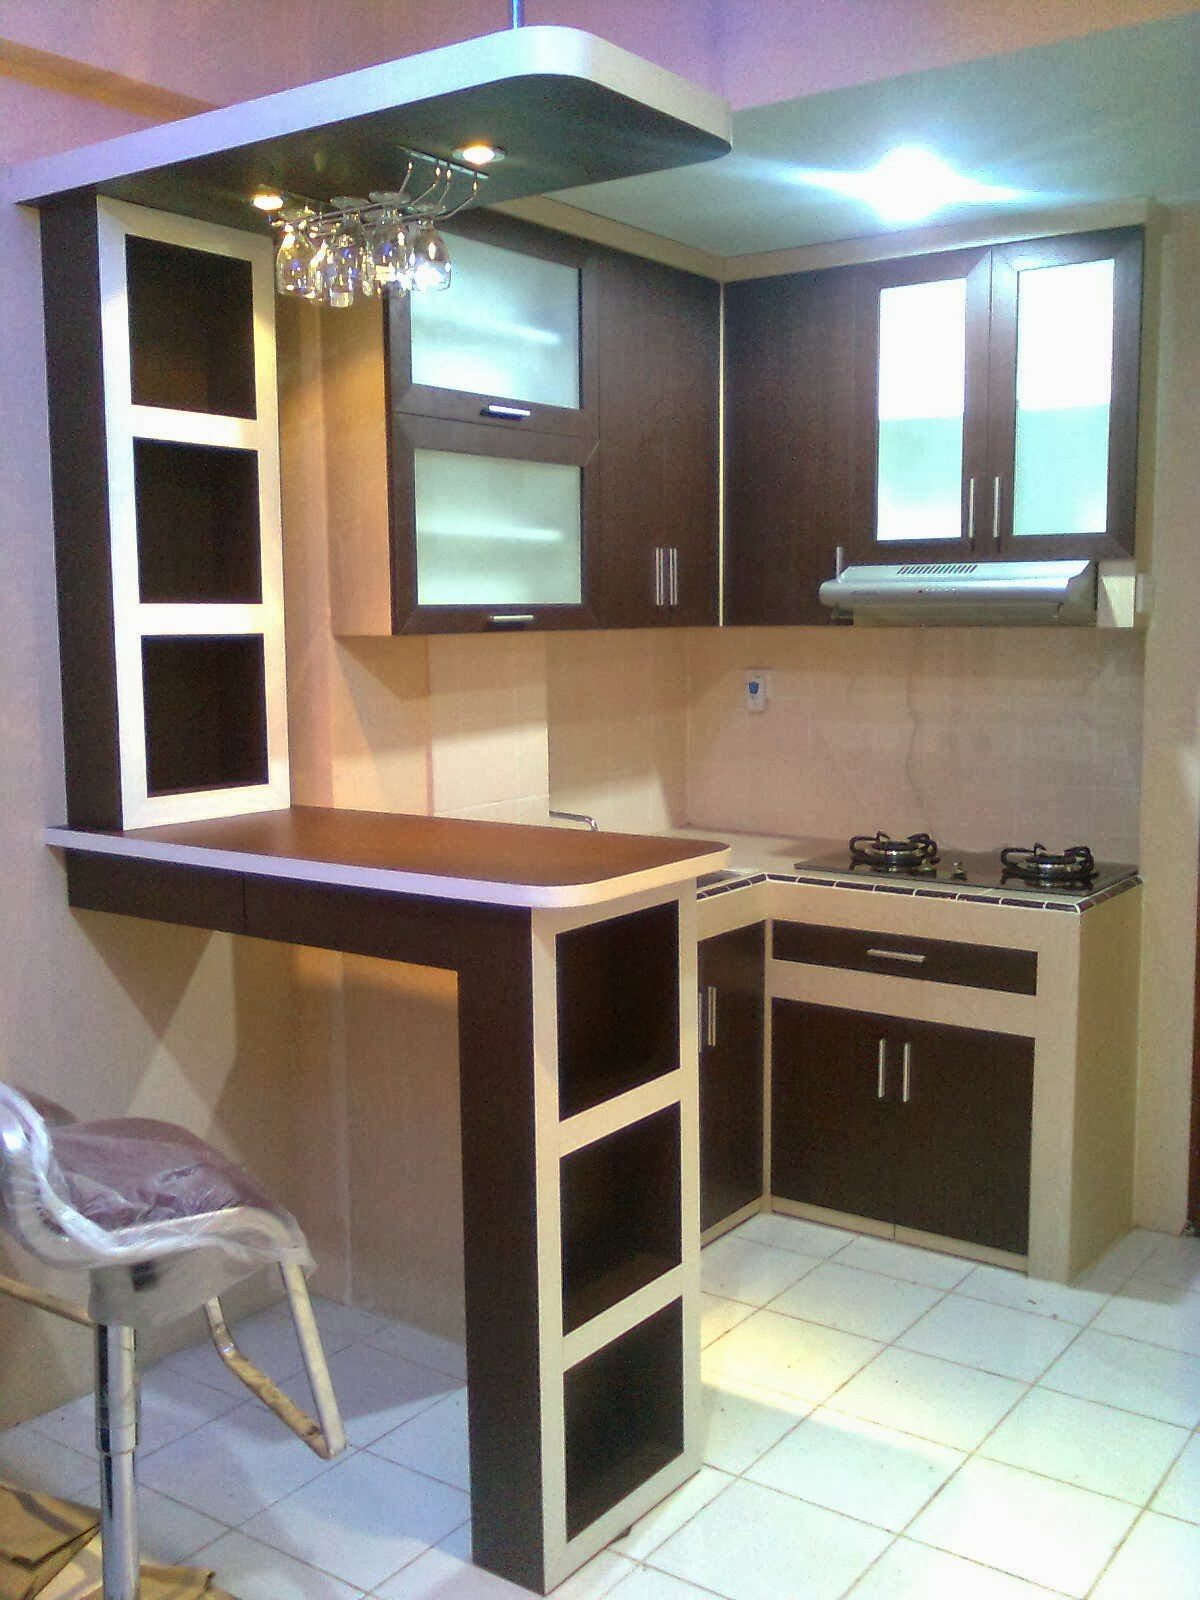 Wallpaper Dapur Kecil Small Kitchen Design With Mini Bar 1200x1600 Wallpaper Teahub Io